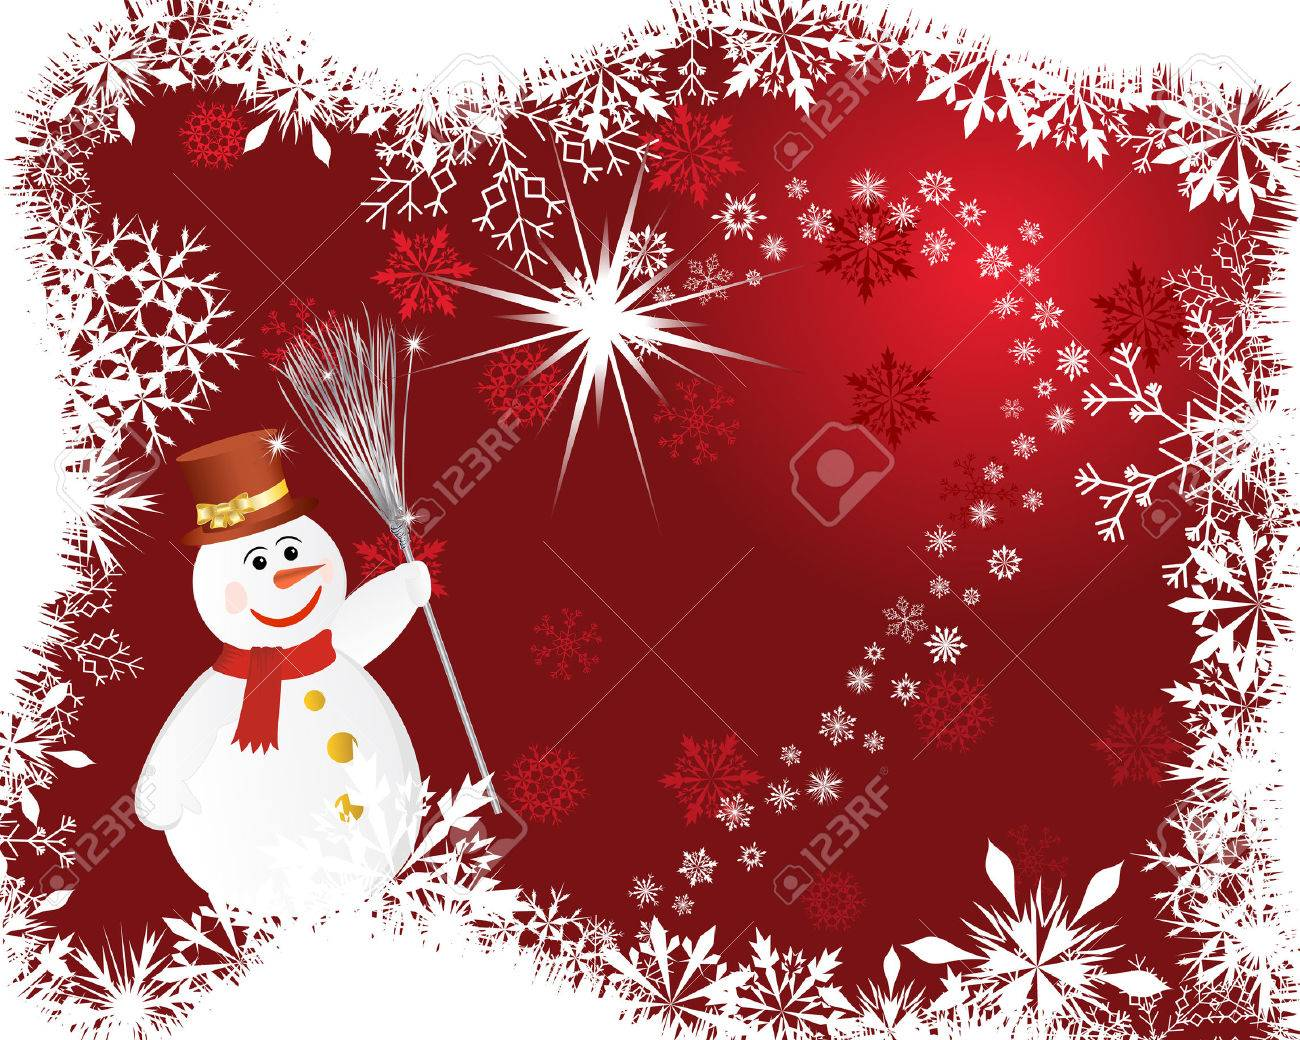 Beautiful vector christmas new year background for design use - Beautiful Vector Christmas New Year Background For Design Use Stock Vector 5868469